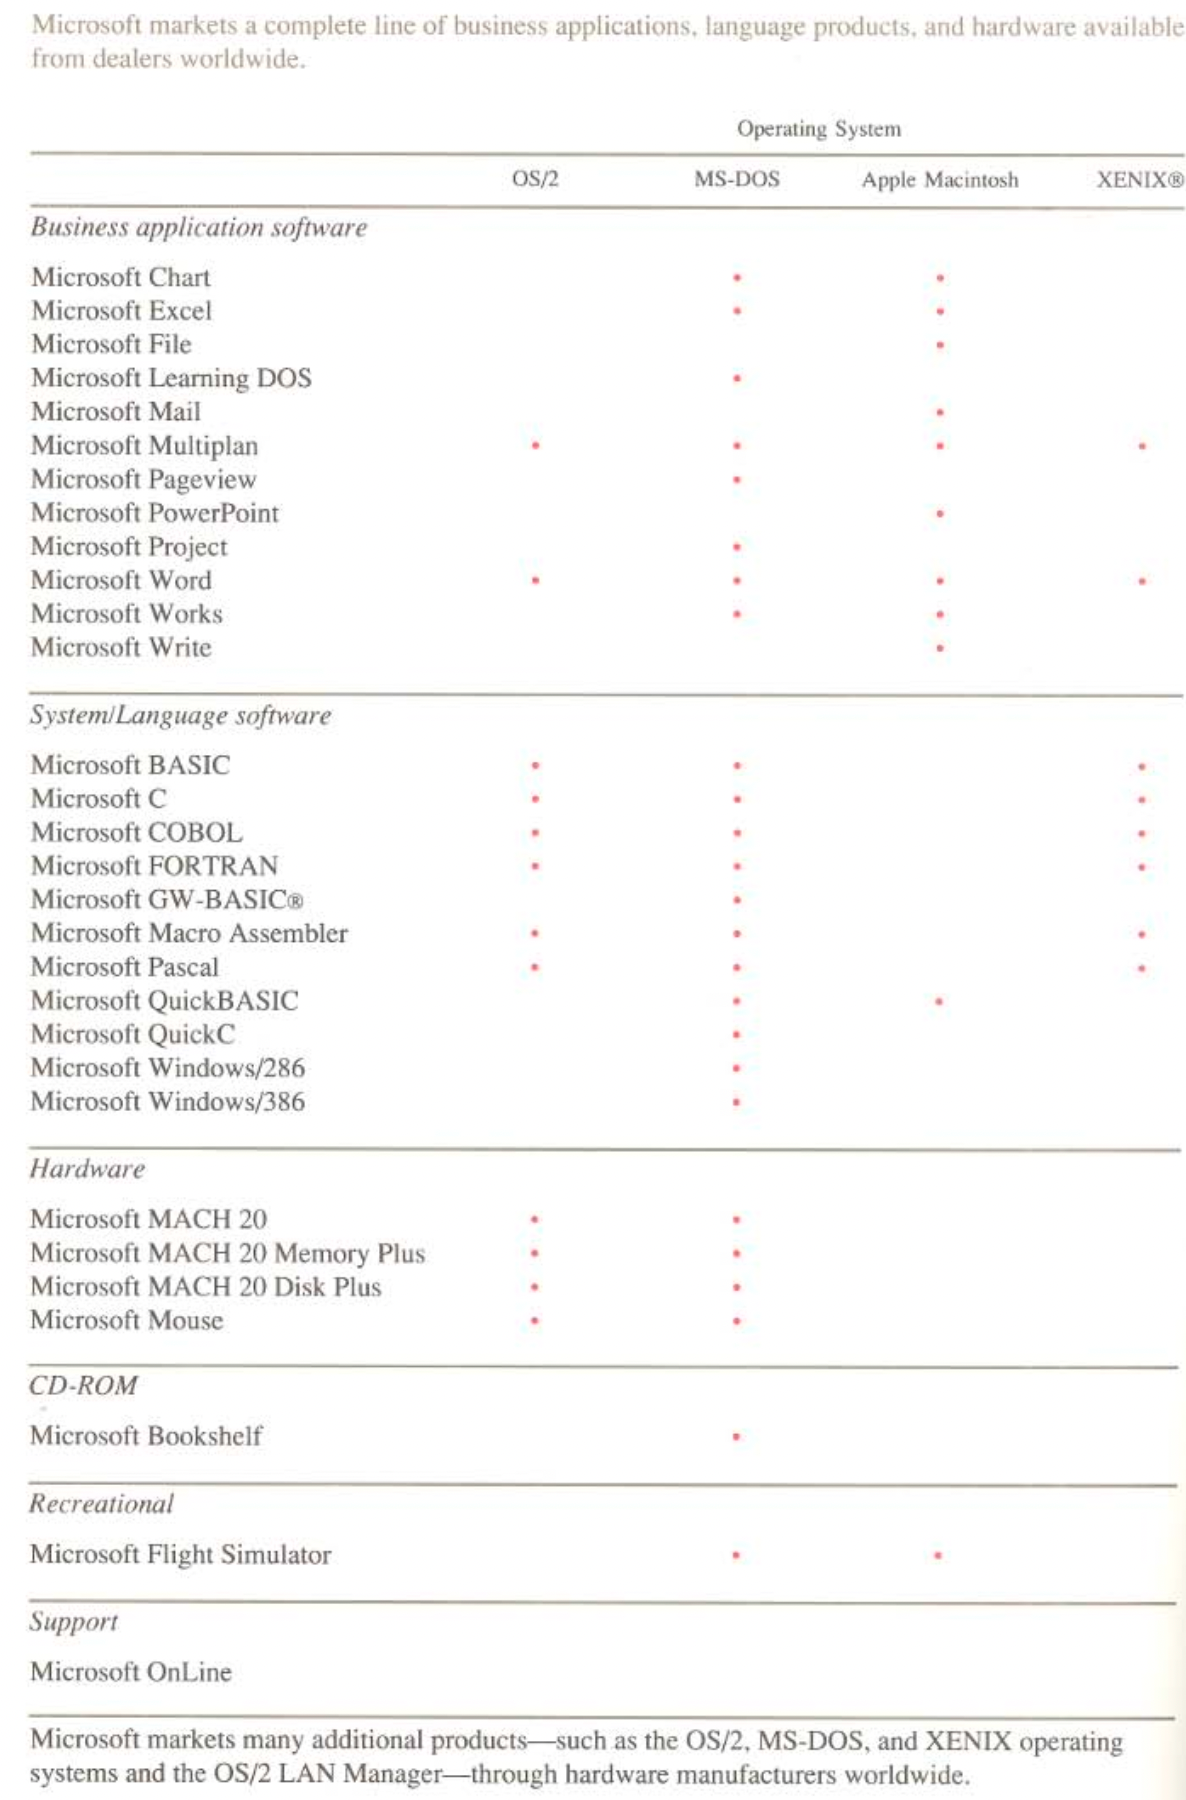 Microsoft annual report listing a variety of products like Char, File, Mail, OS/2, Xenix. It does not list Windows.